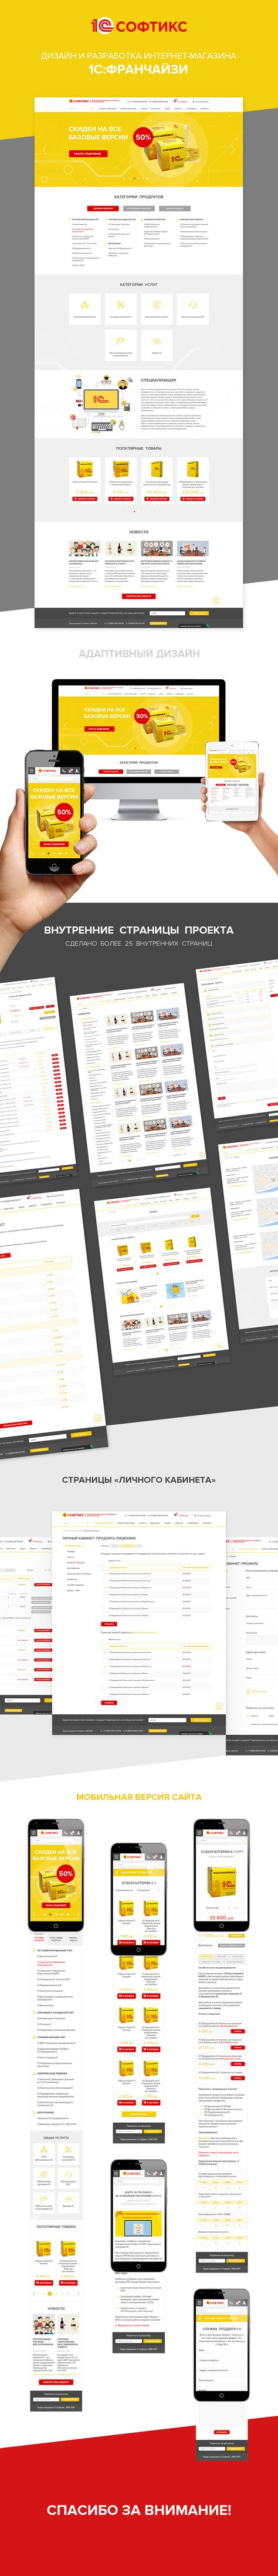 Design of the online store for 1С SOFTIKS